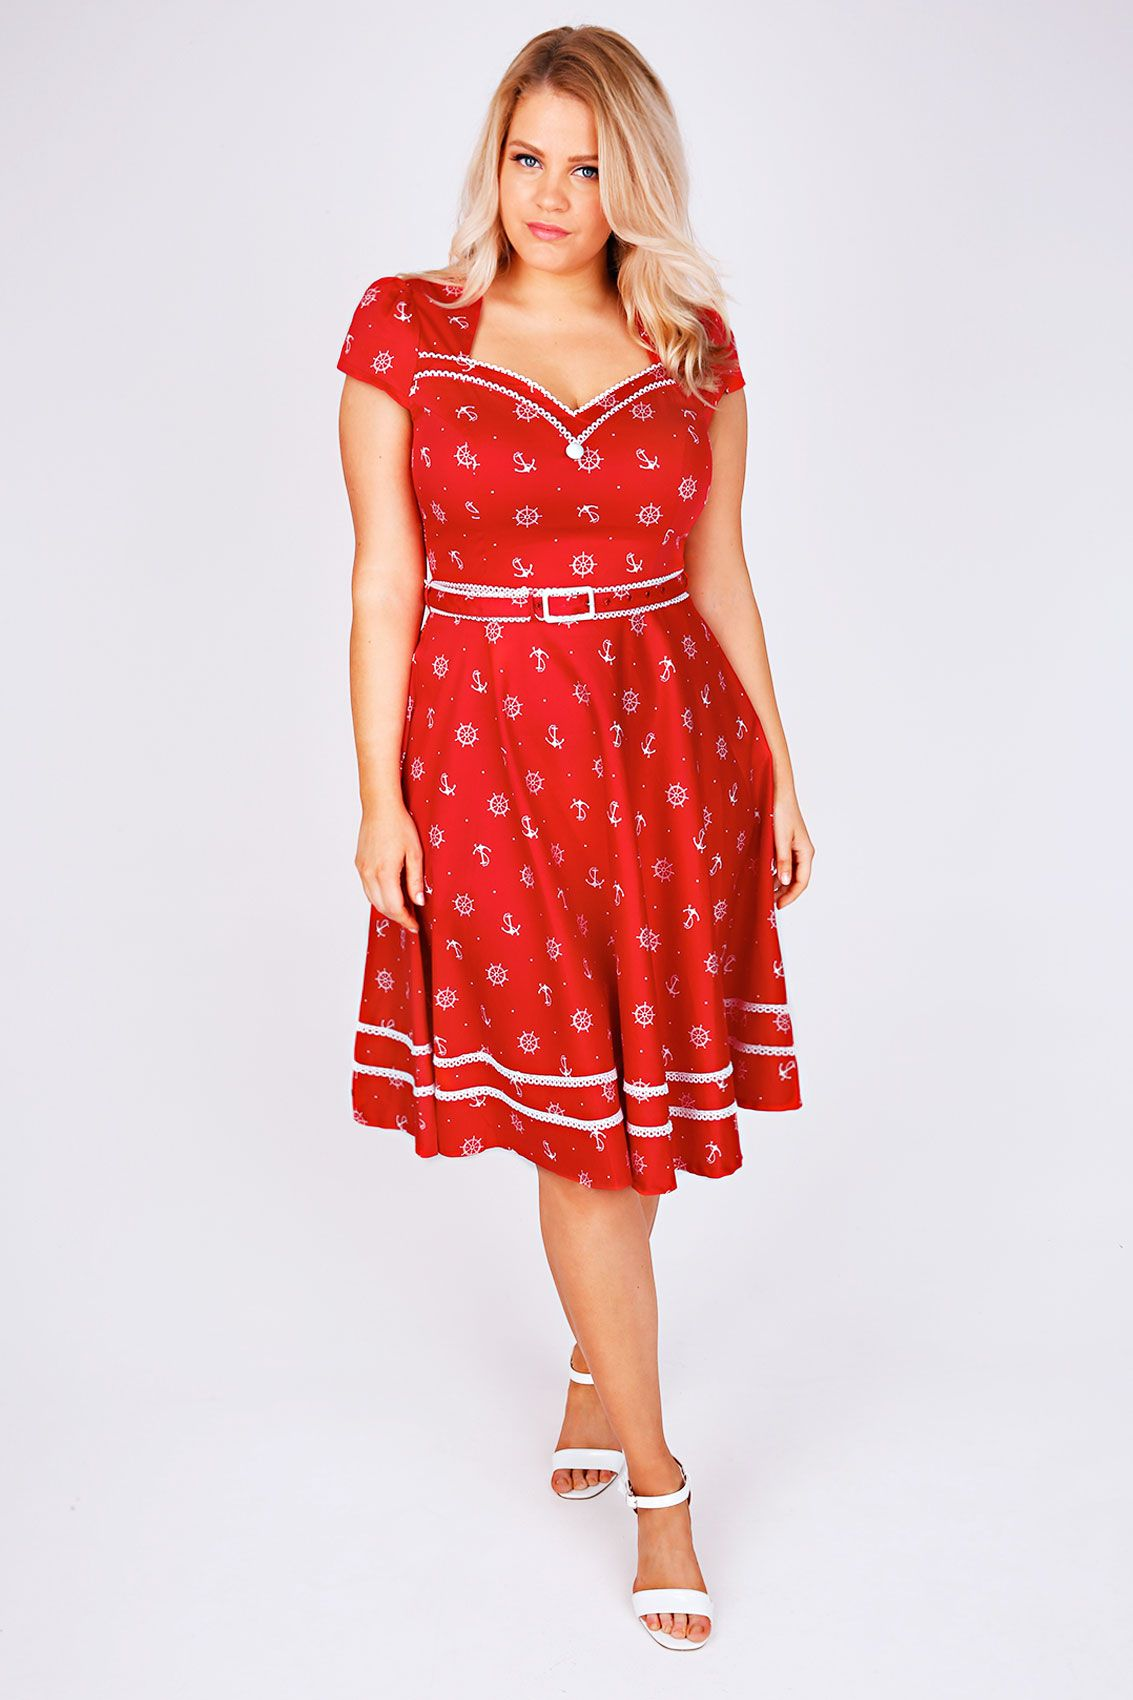 VOODOO VIXEN Red & White Sailor Print 50\'s Style Dress | Clothing ...